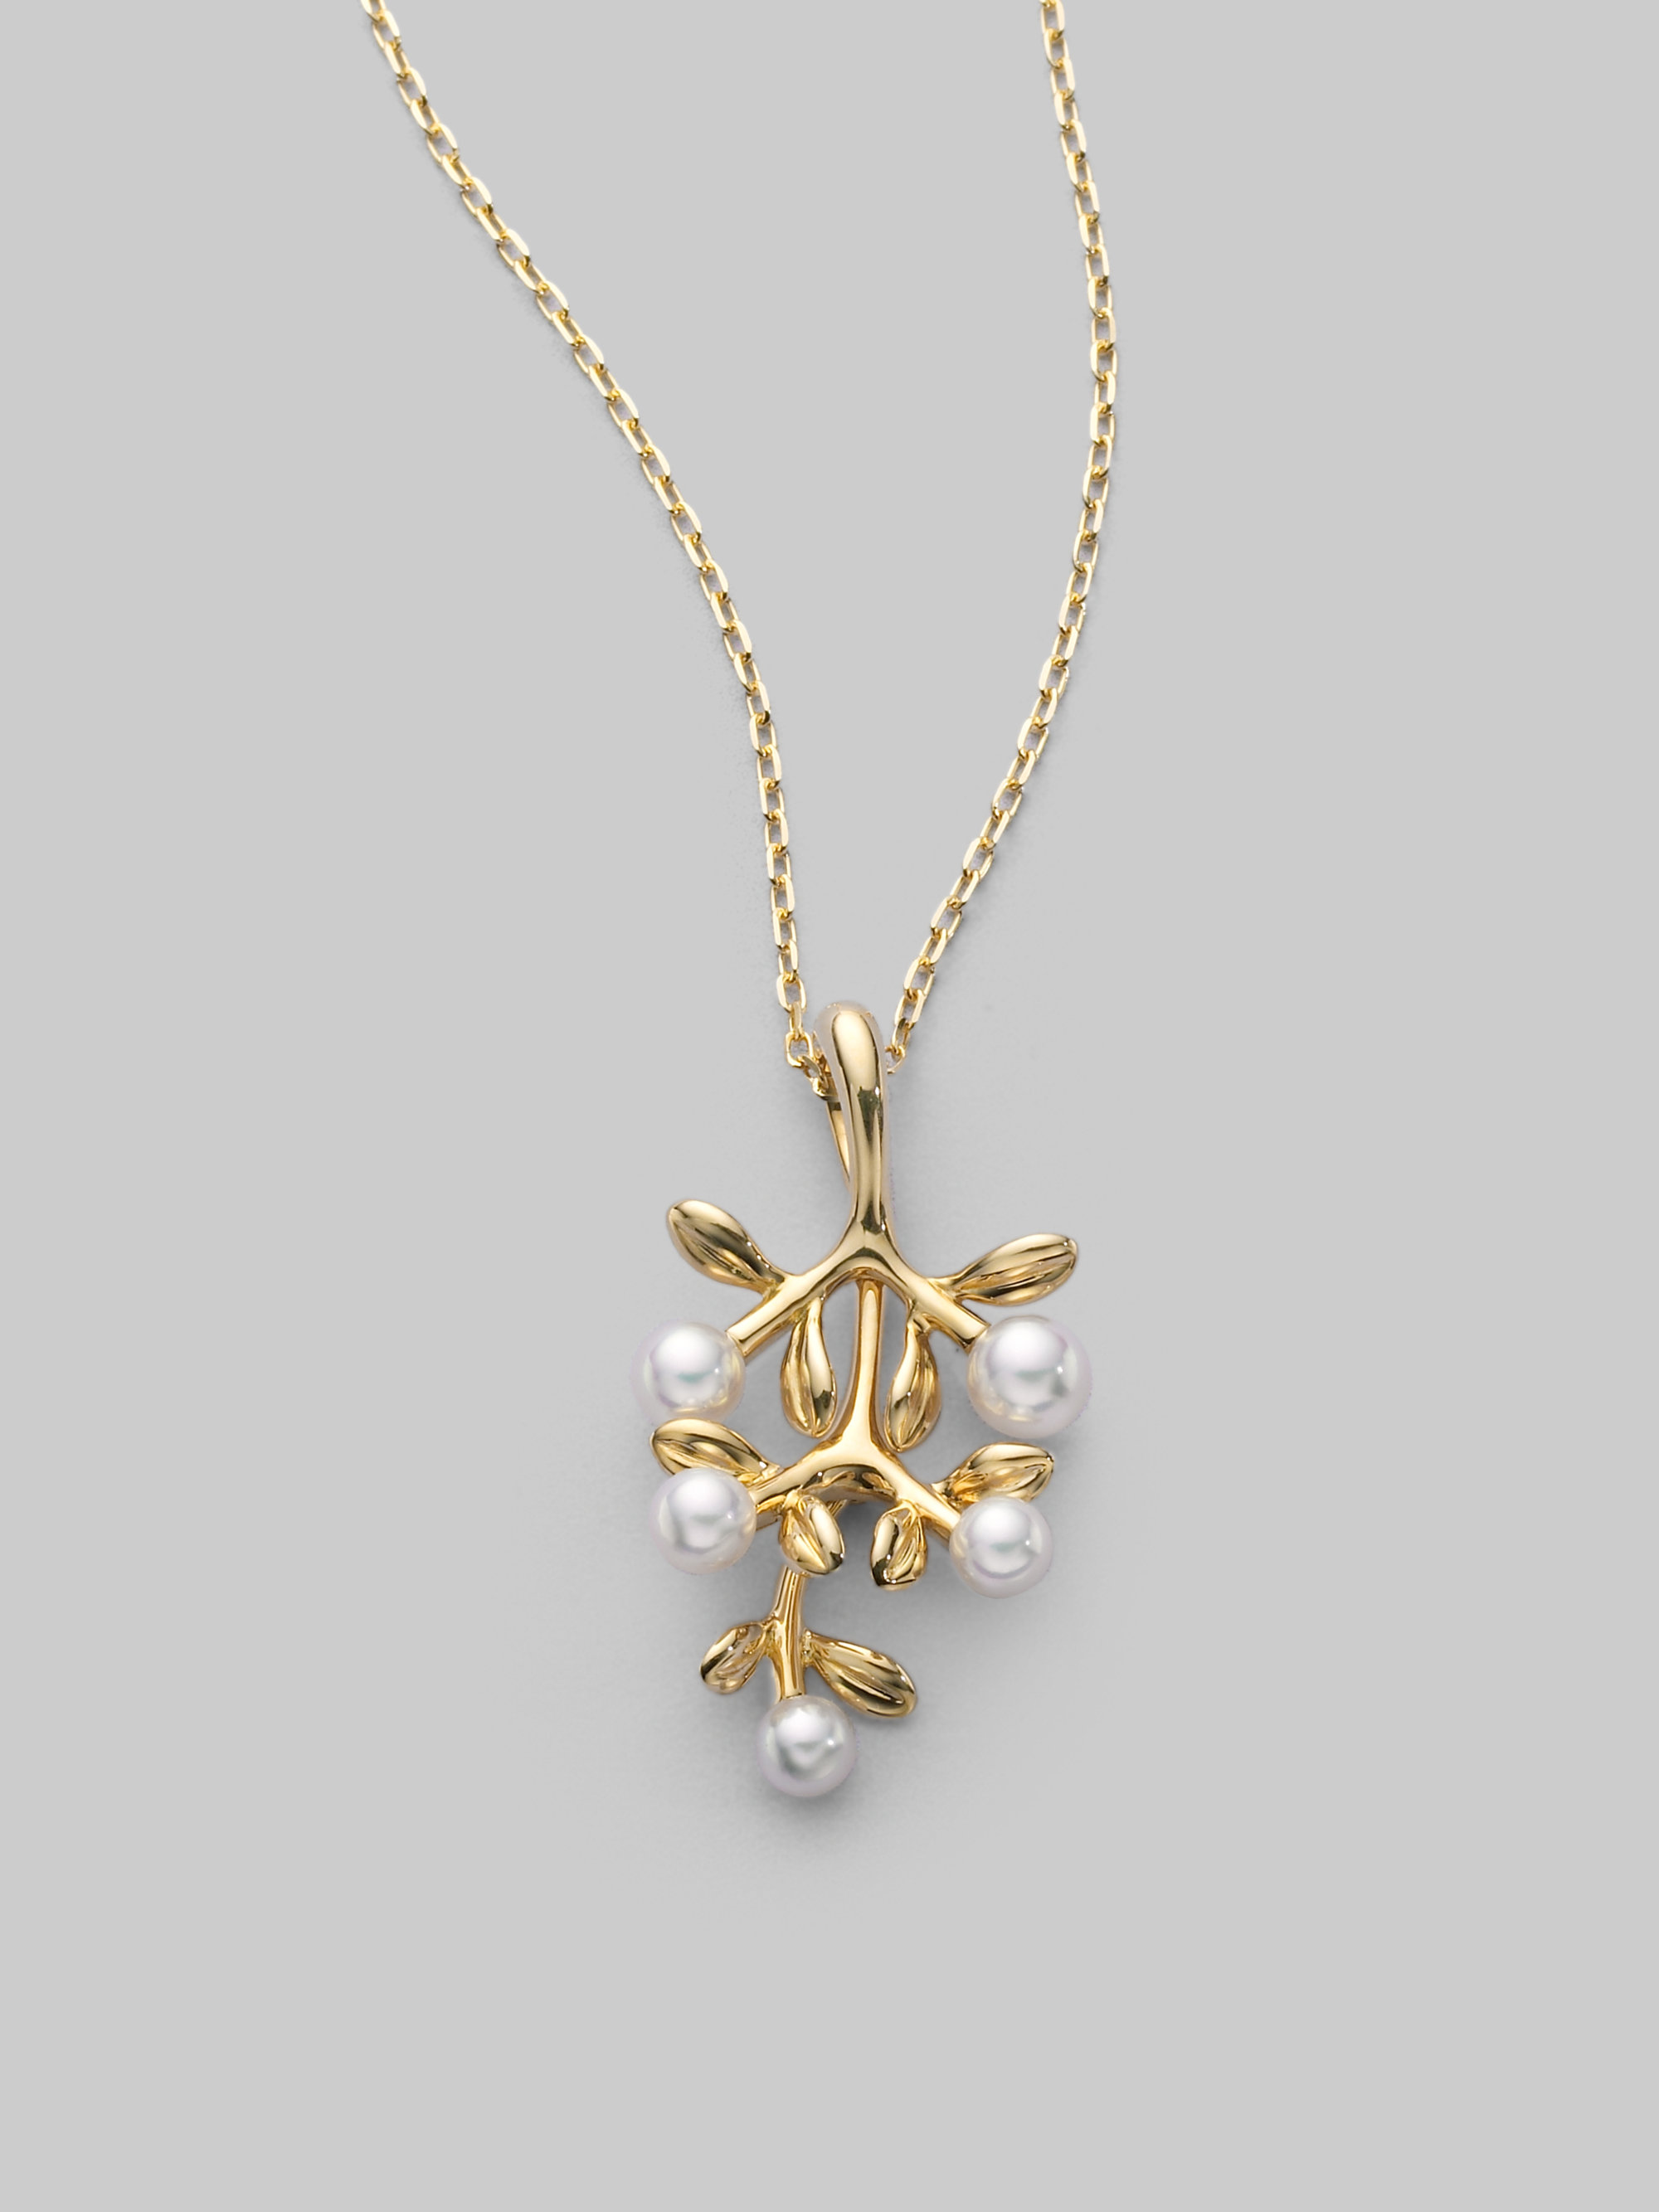 south perlen pearl porter sea brands pret gold wempe a anhnger cultured rose en jewelry pendant